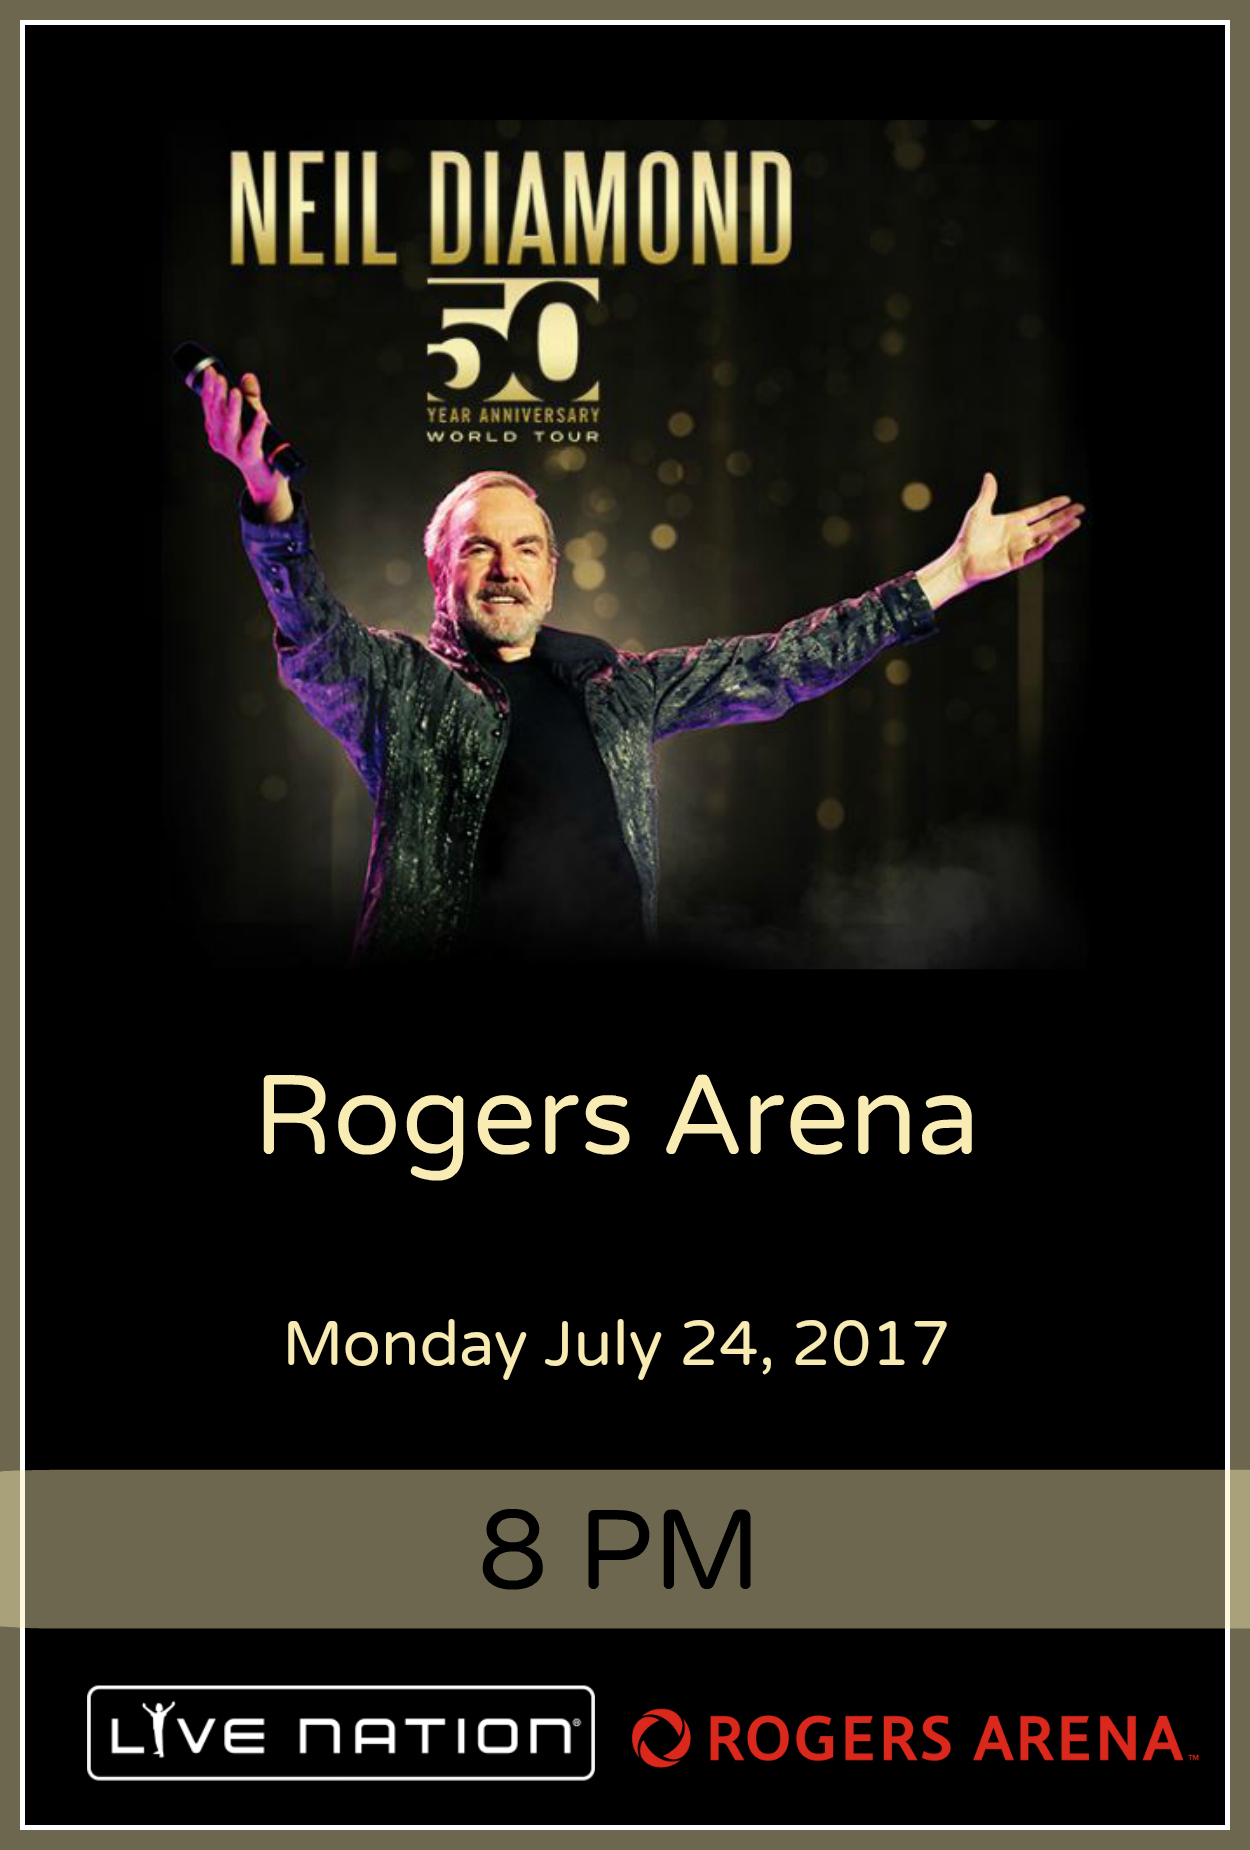 Neil Diamond 50th Anniversary Tour - Rogers Arena